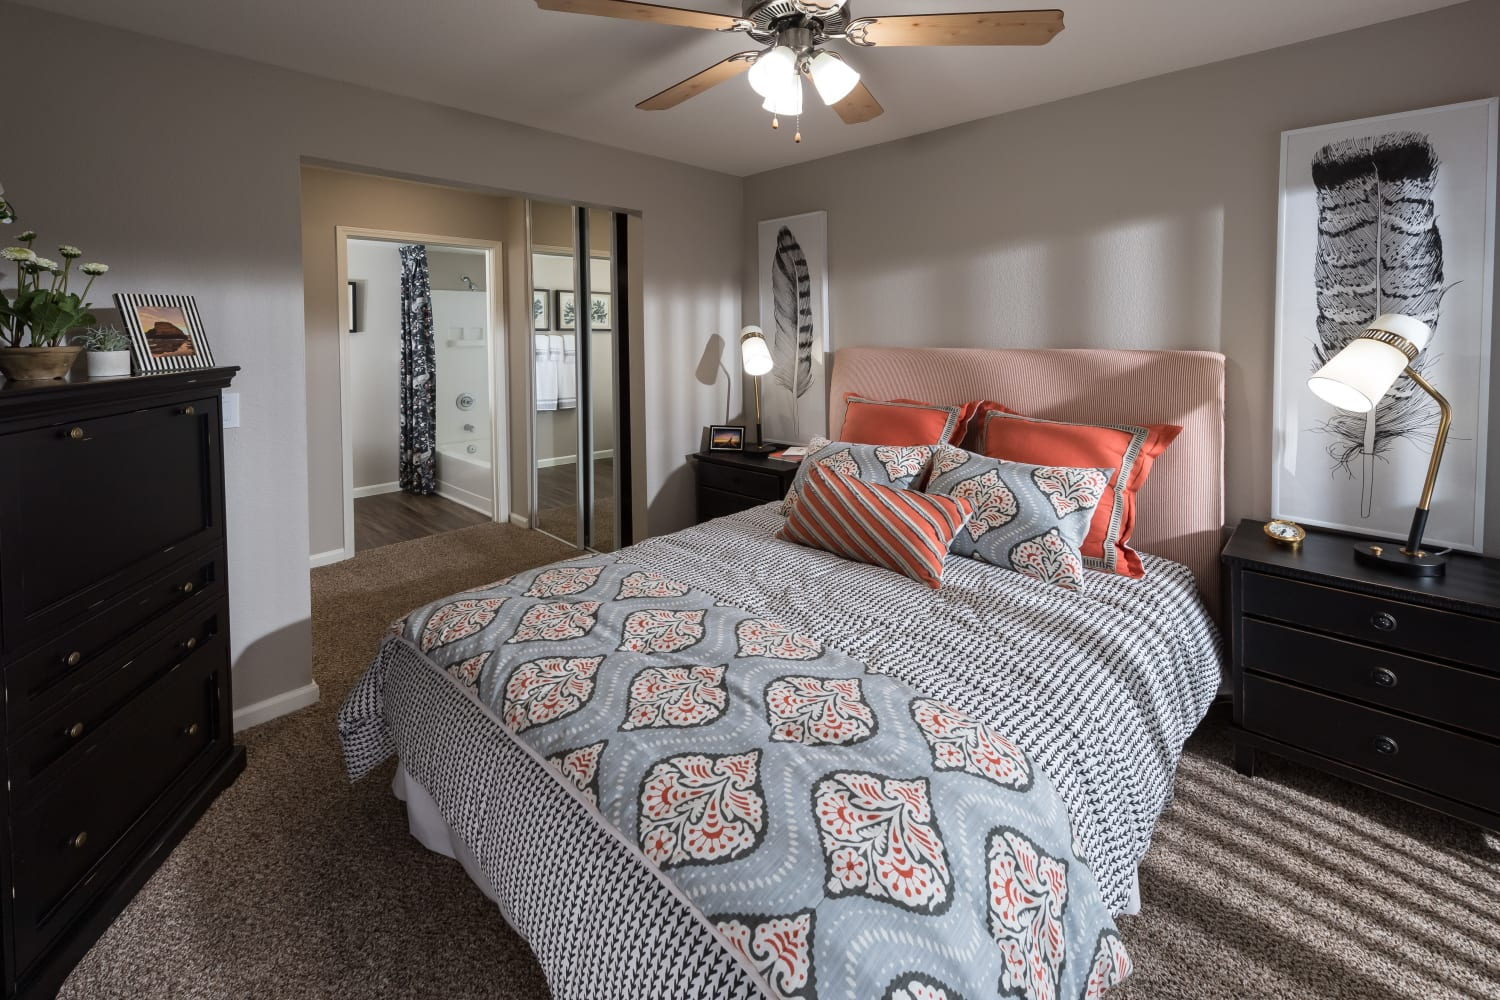 Enjoy your new bedroom at Bella Vista Apartments in Santa Clara, California